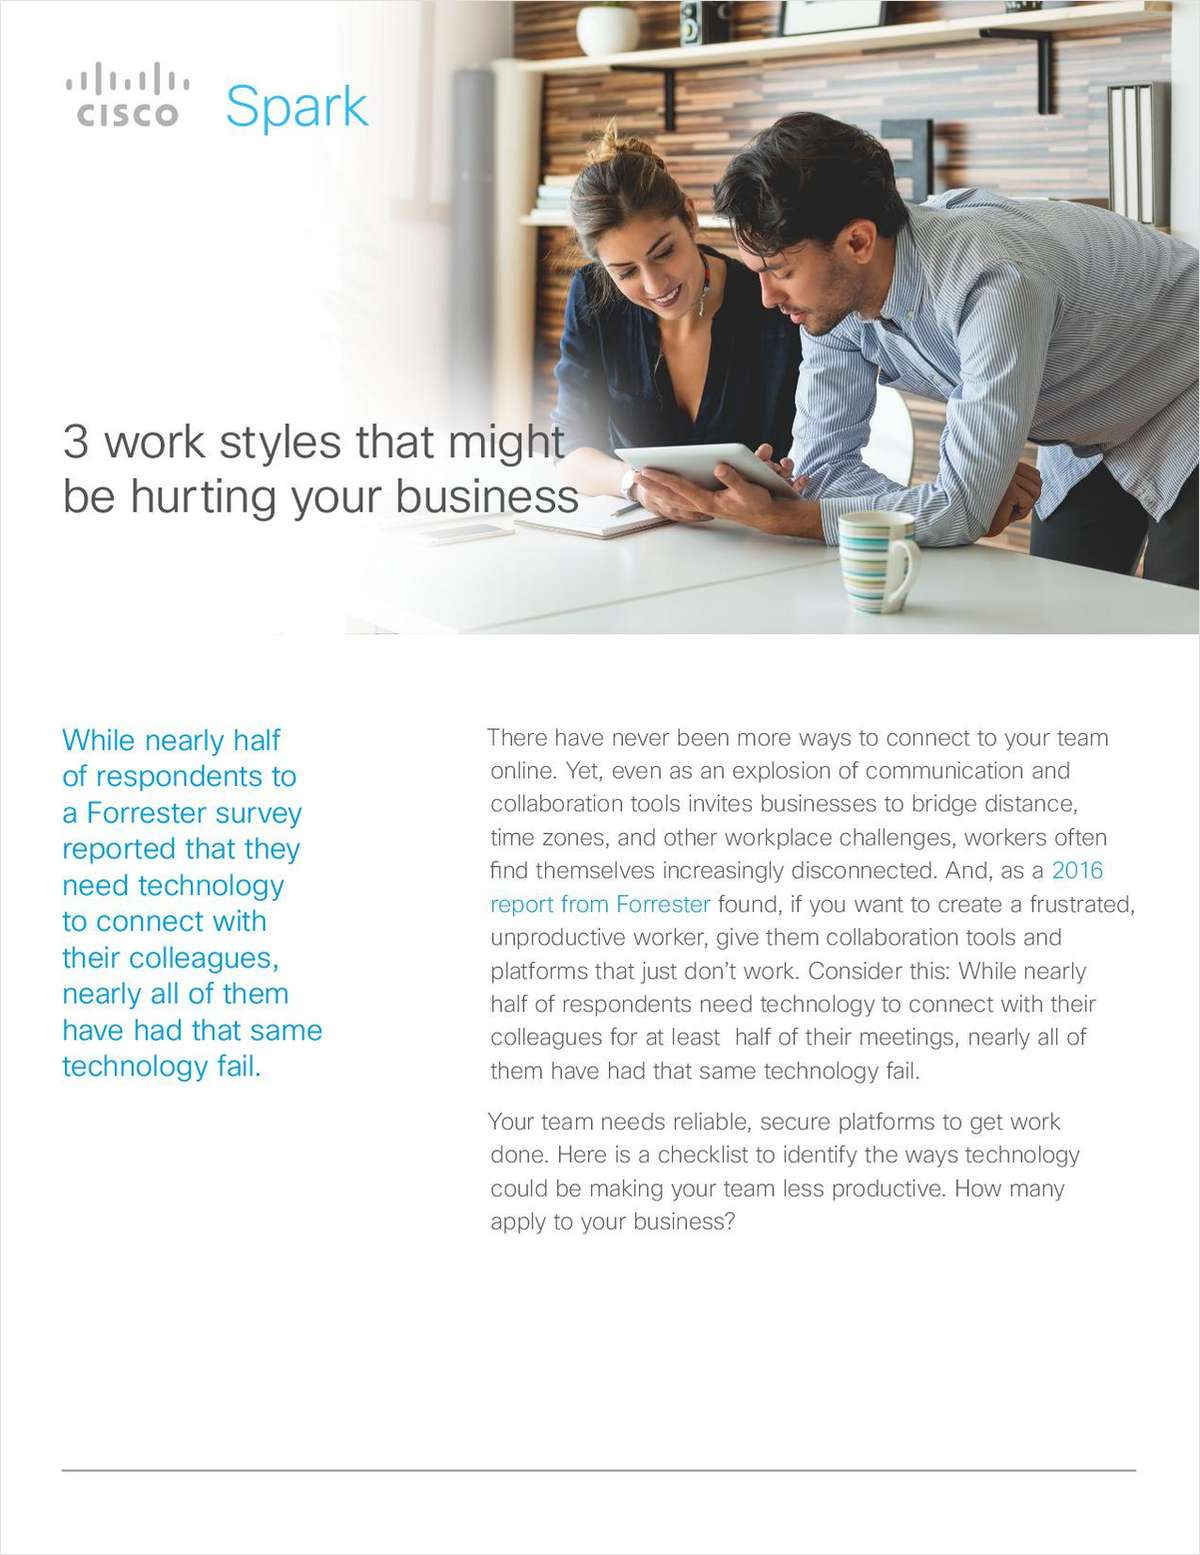 3 Work Styles That Might Be Hurting Your Business